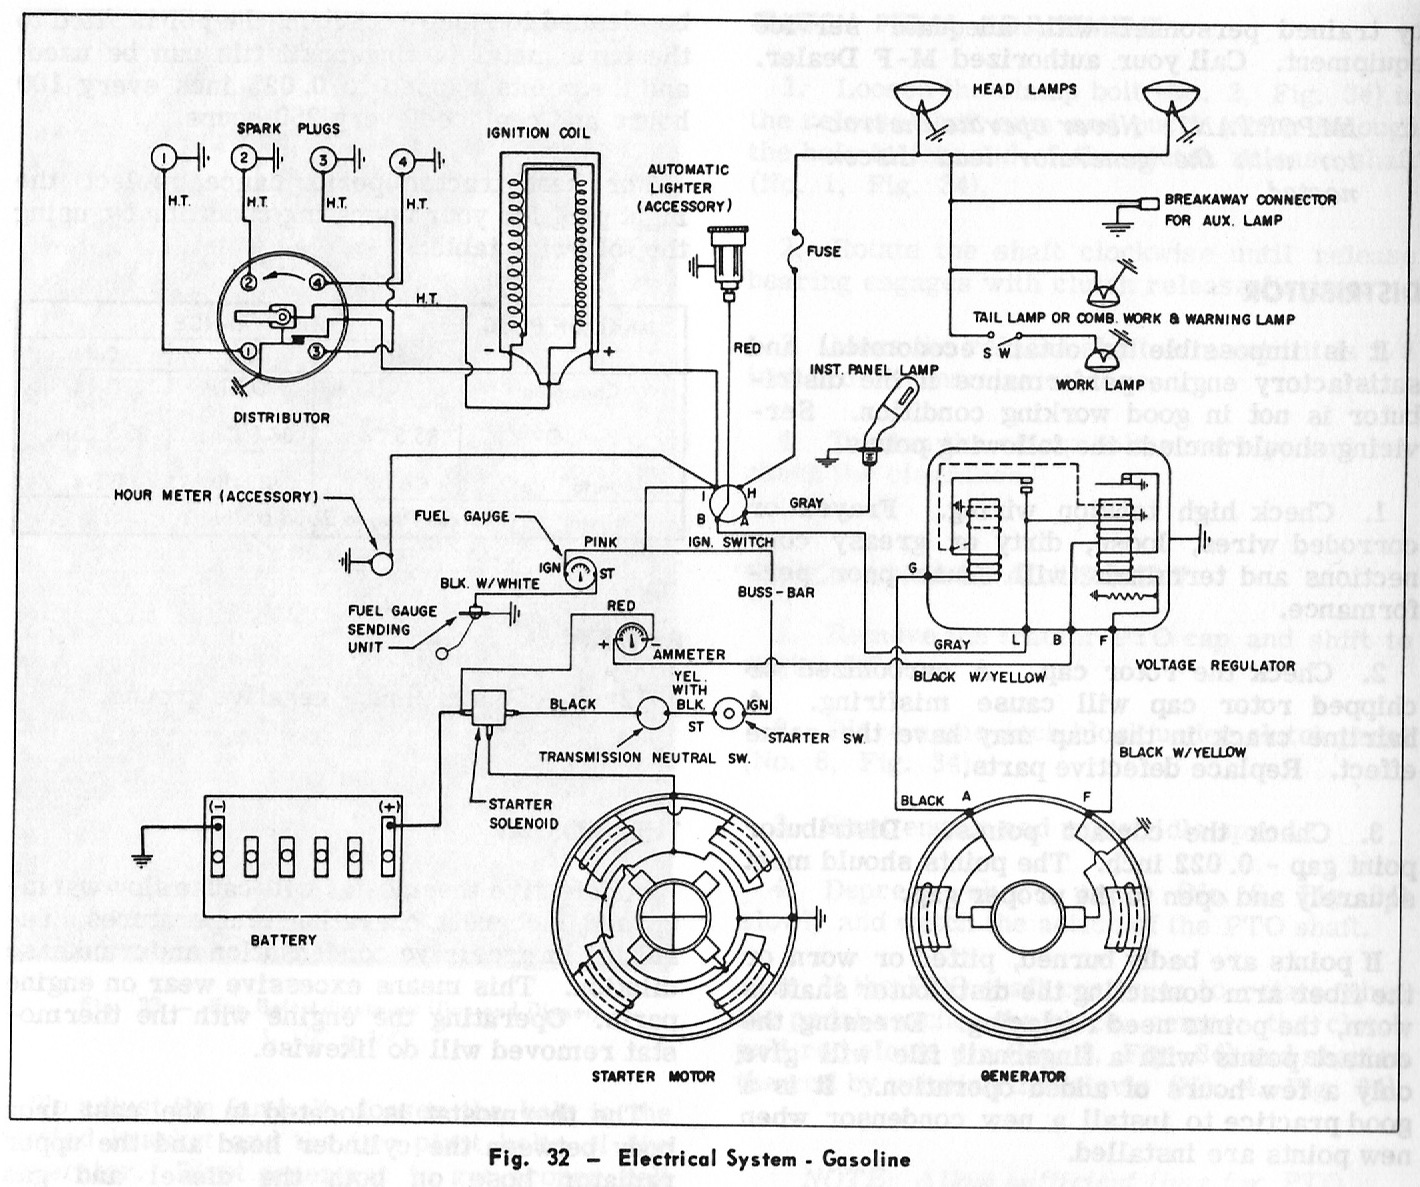 Kenworth Fuel Gauge Diagrams